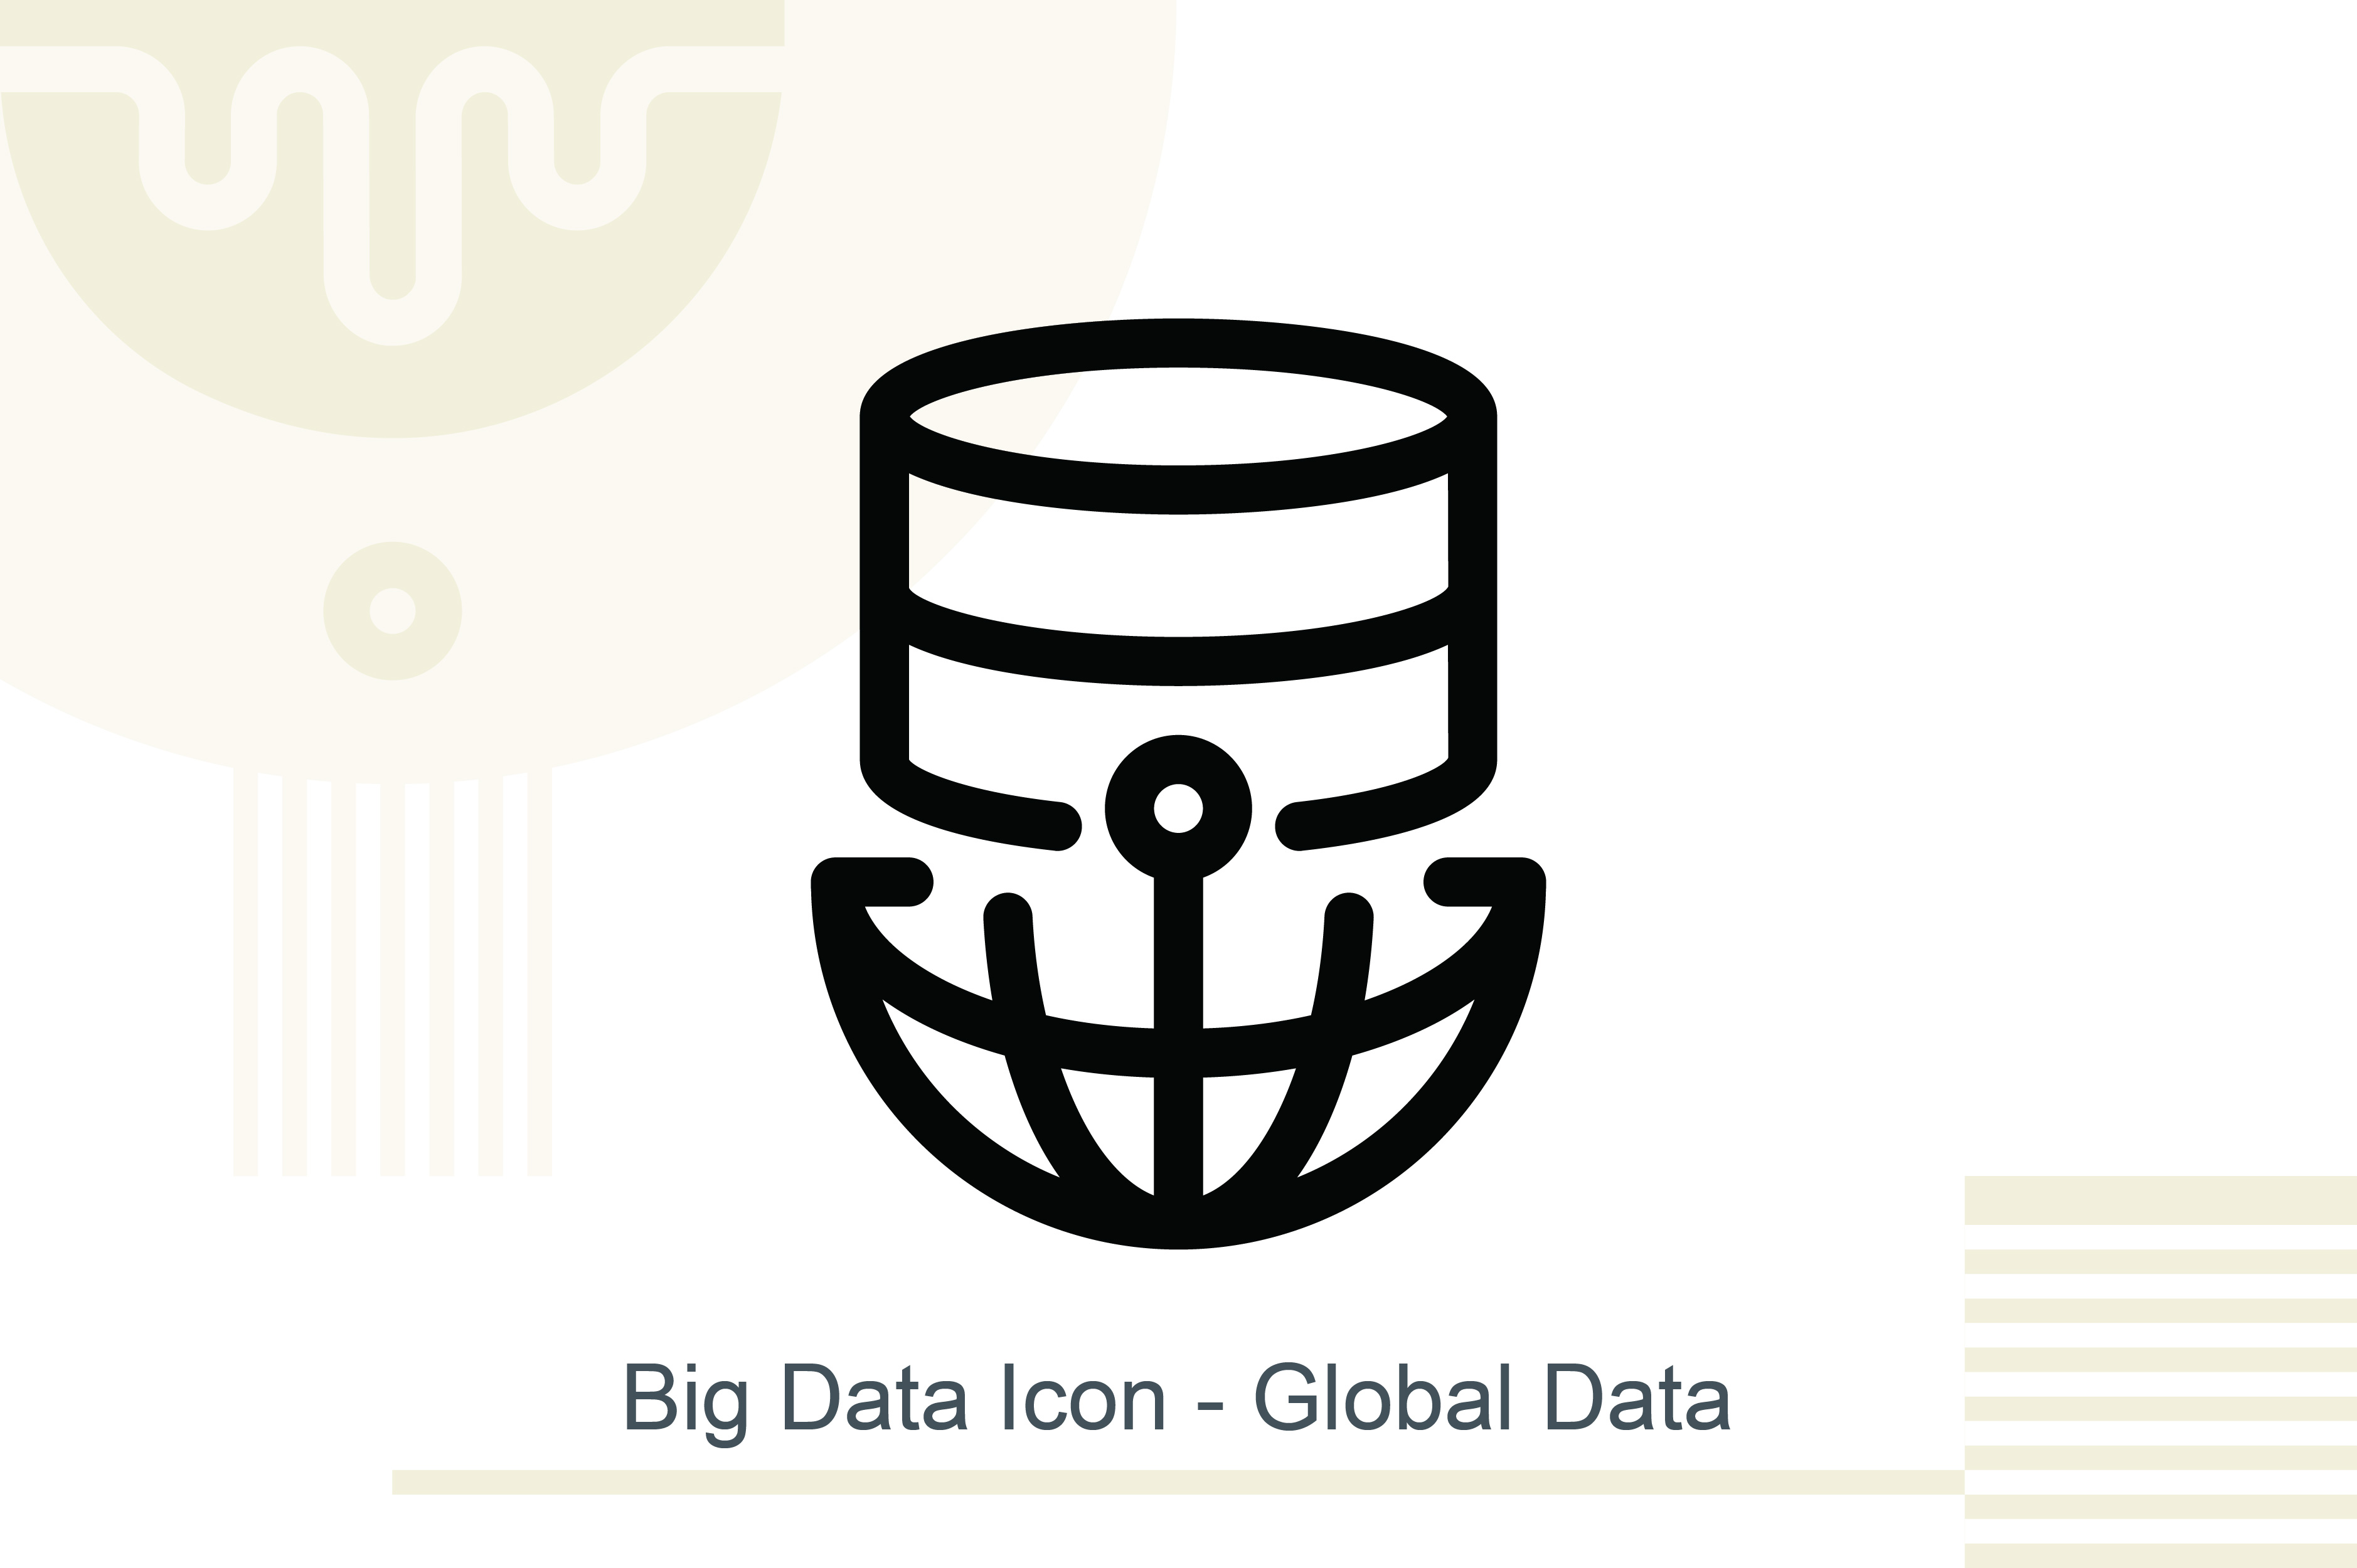 Big Data Icon Global Data Graphic By Melindagency Creative Fabrica Big data icon set, data analytic icon set, information technology. creative fabrica